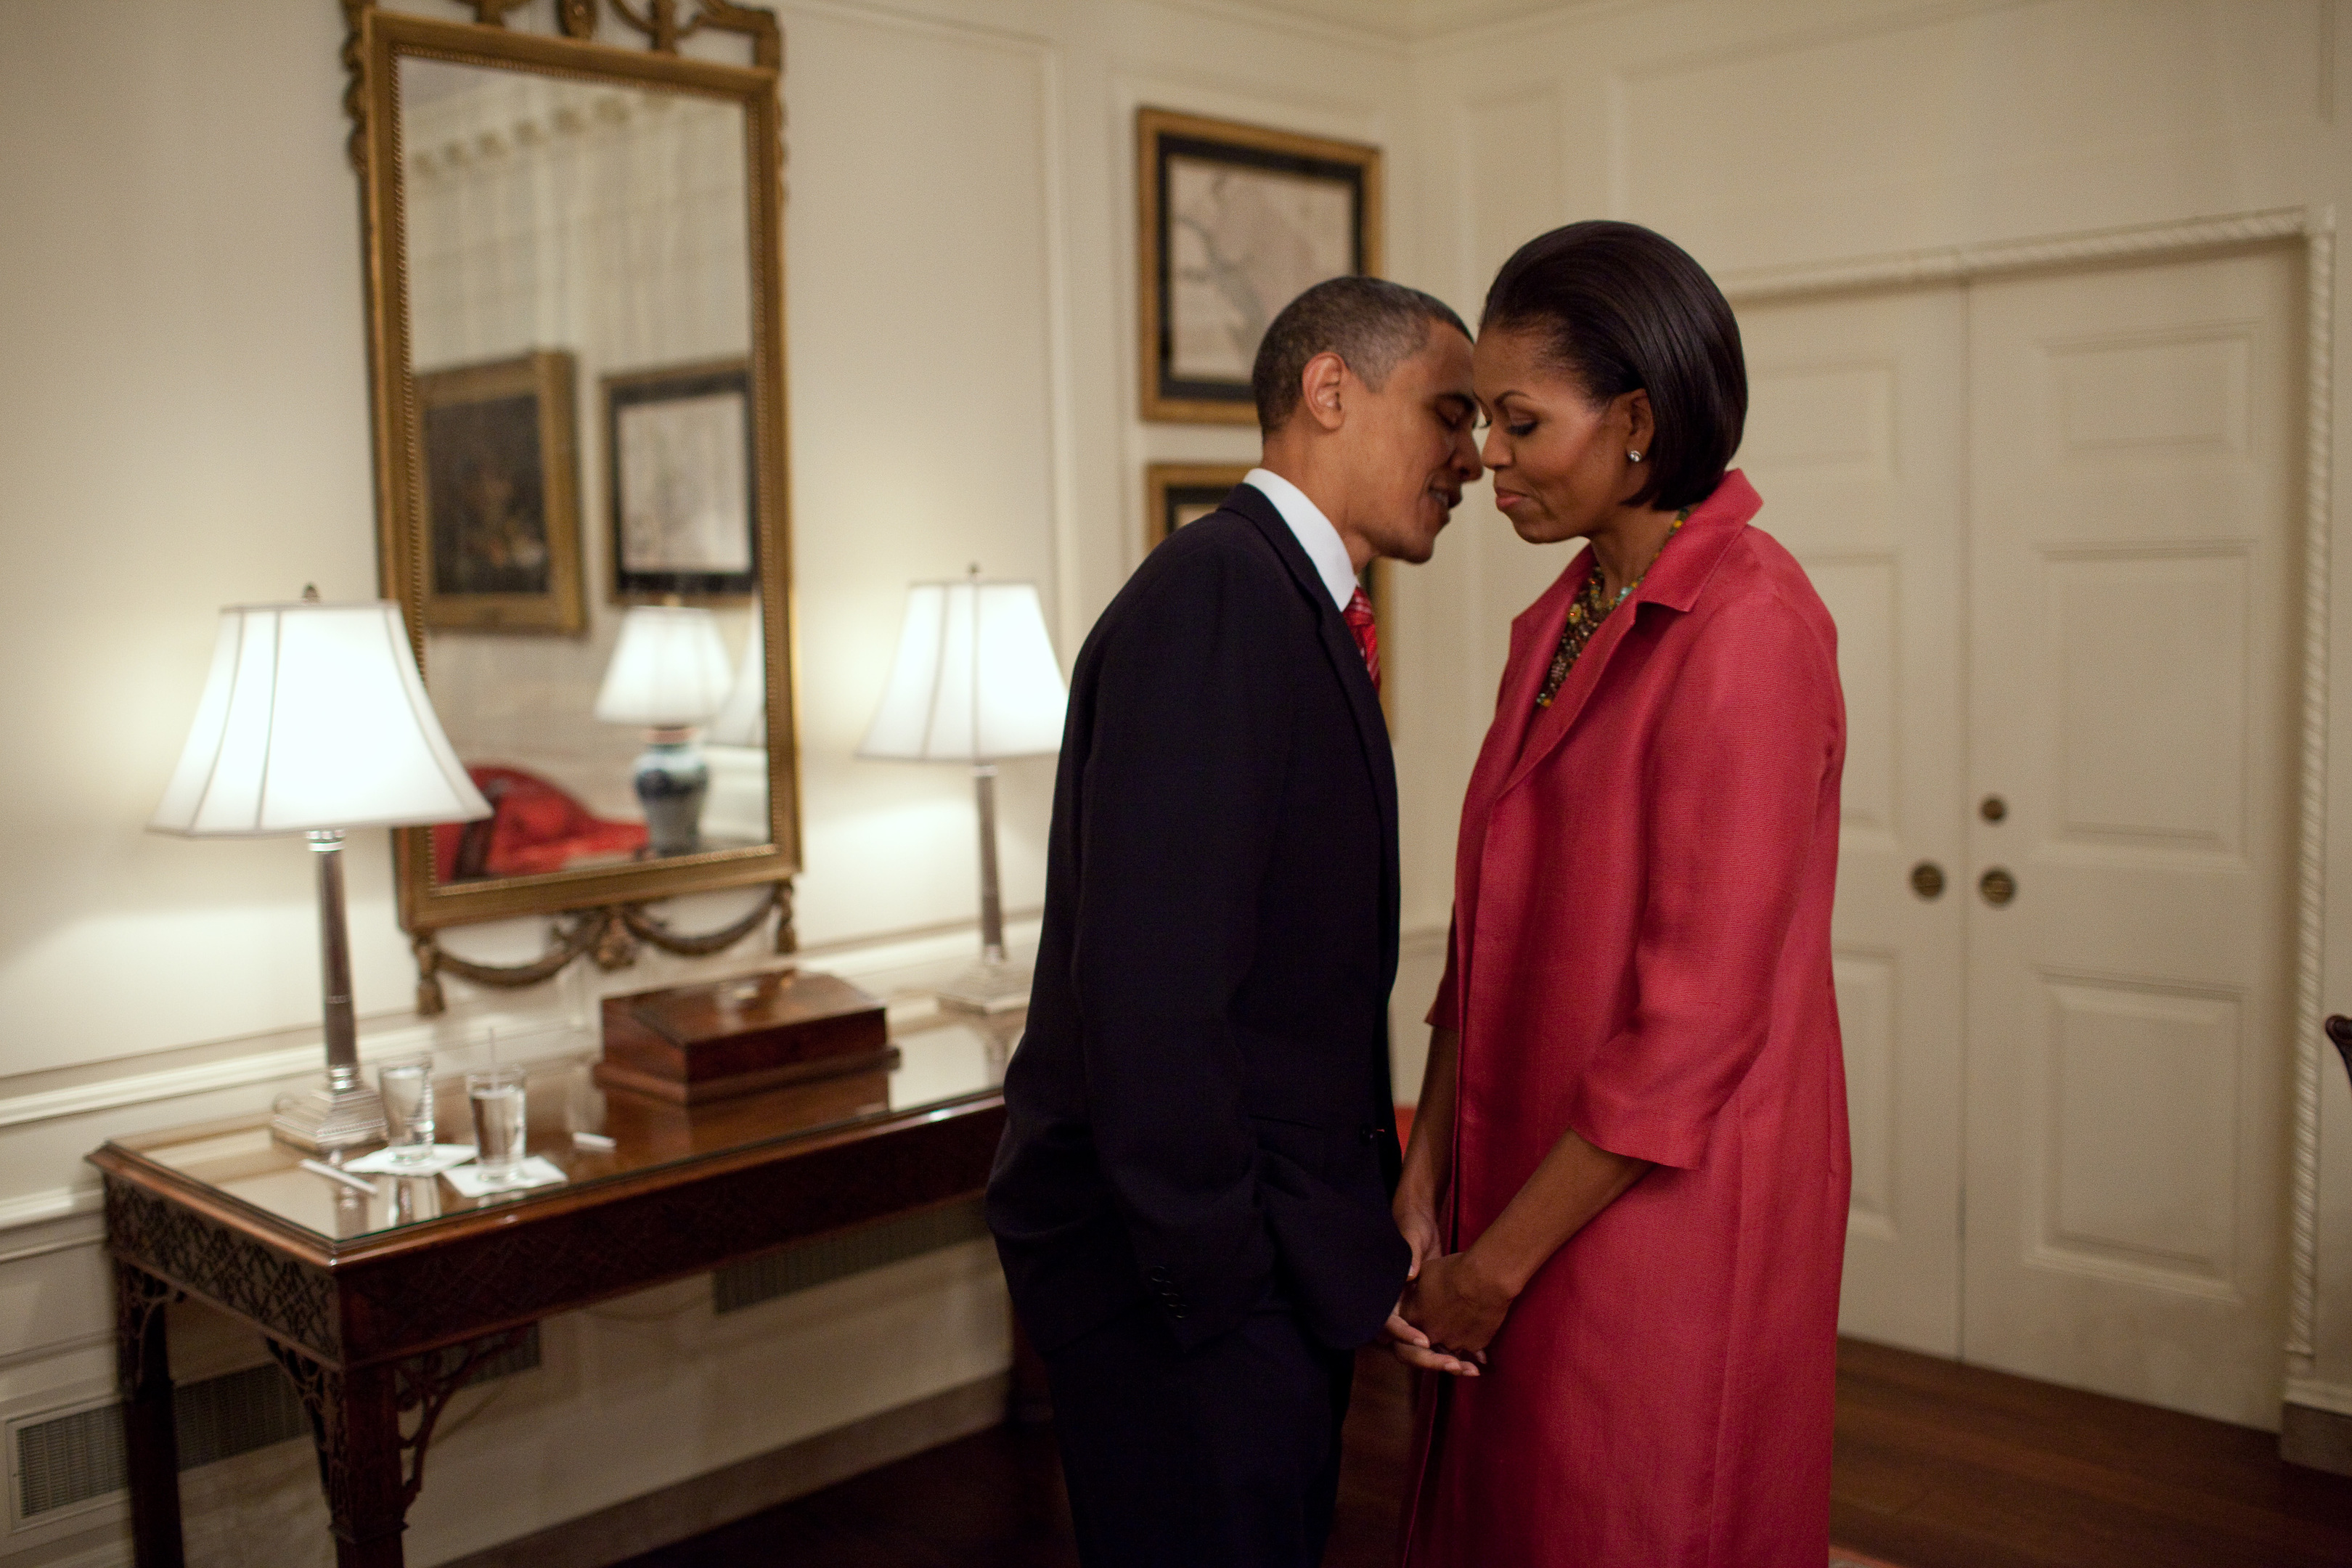 President Barack Obama and First Lady Michelle Obama, May 19, 2010. (Official White House Photo by Pete Souza)